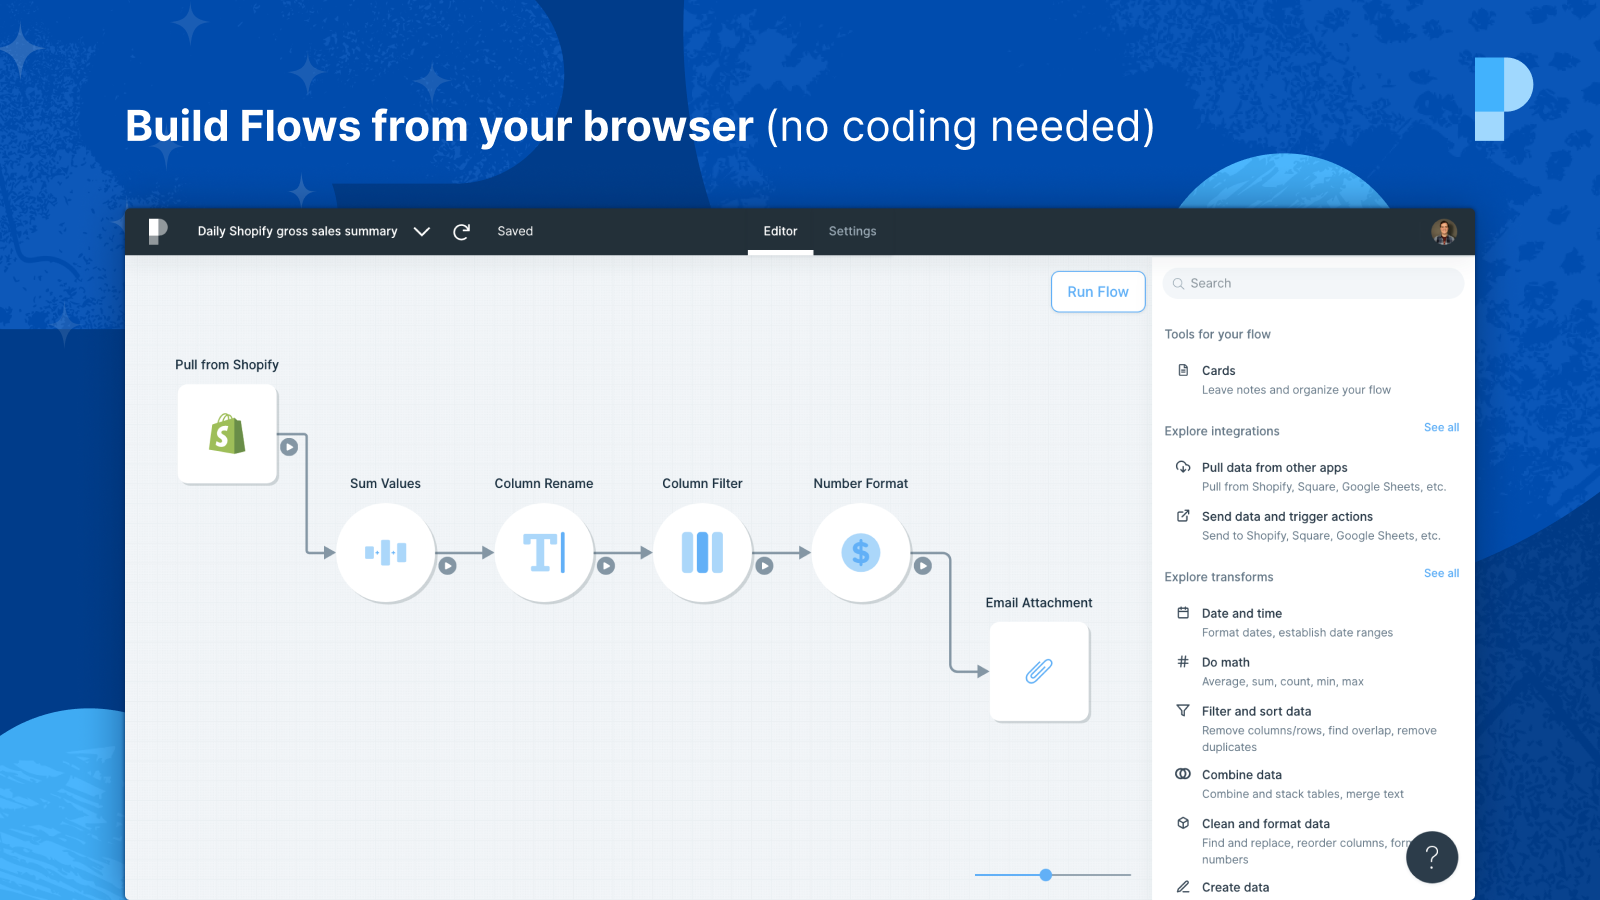 Build flows from your browser (no coding needed)